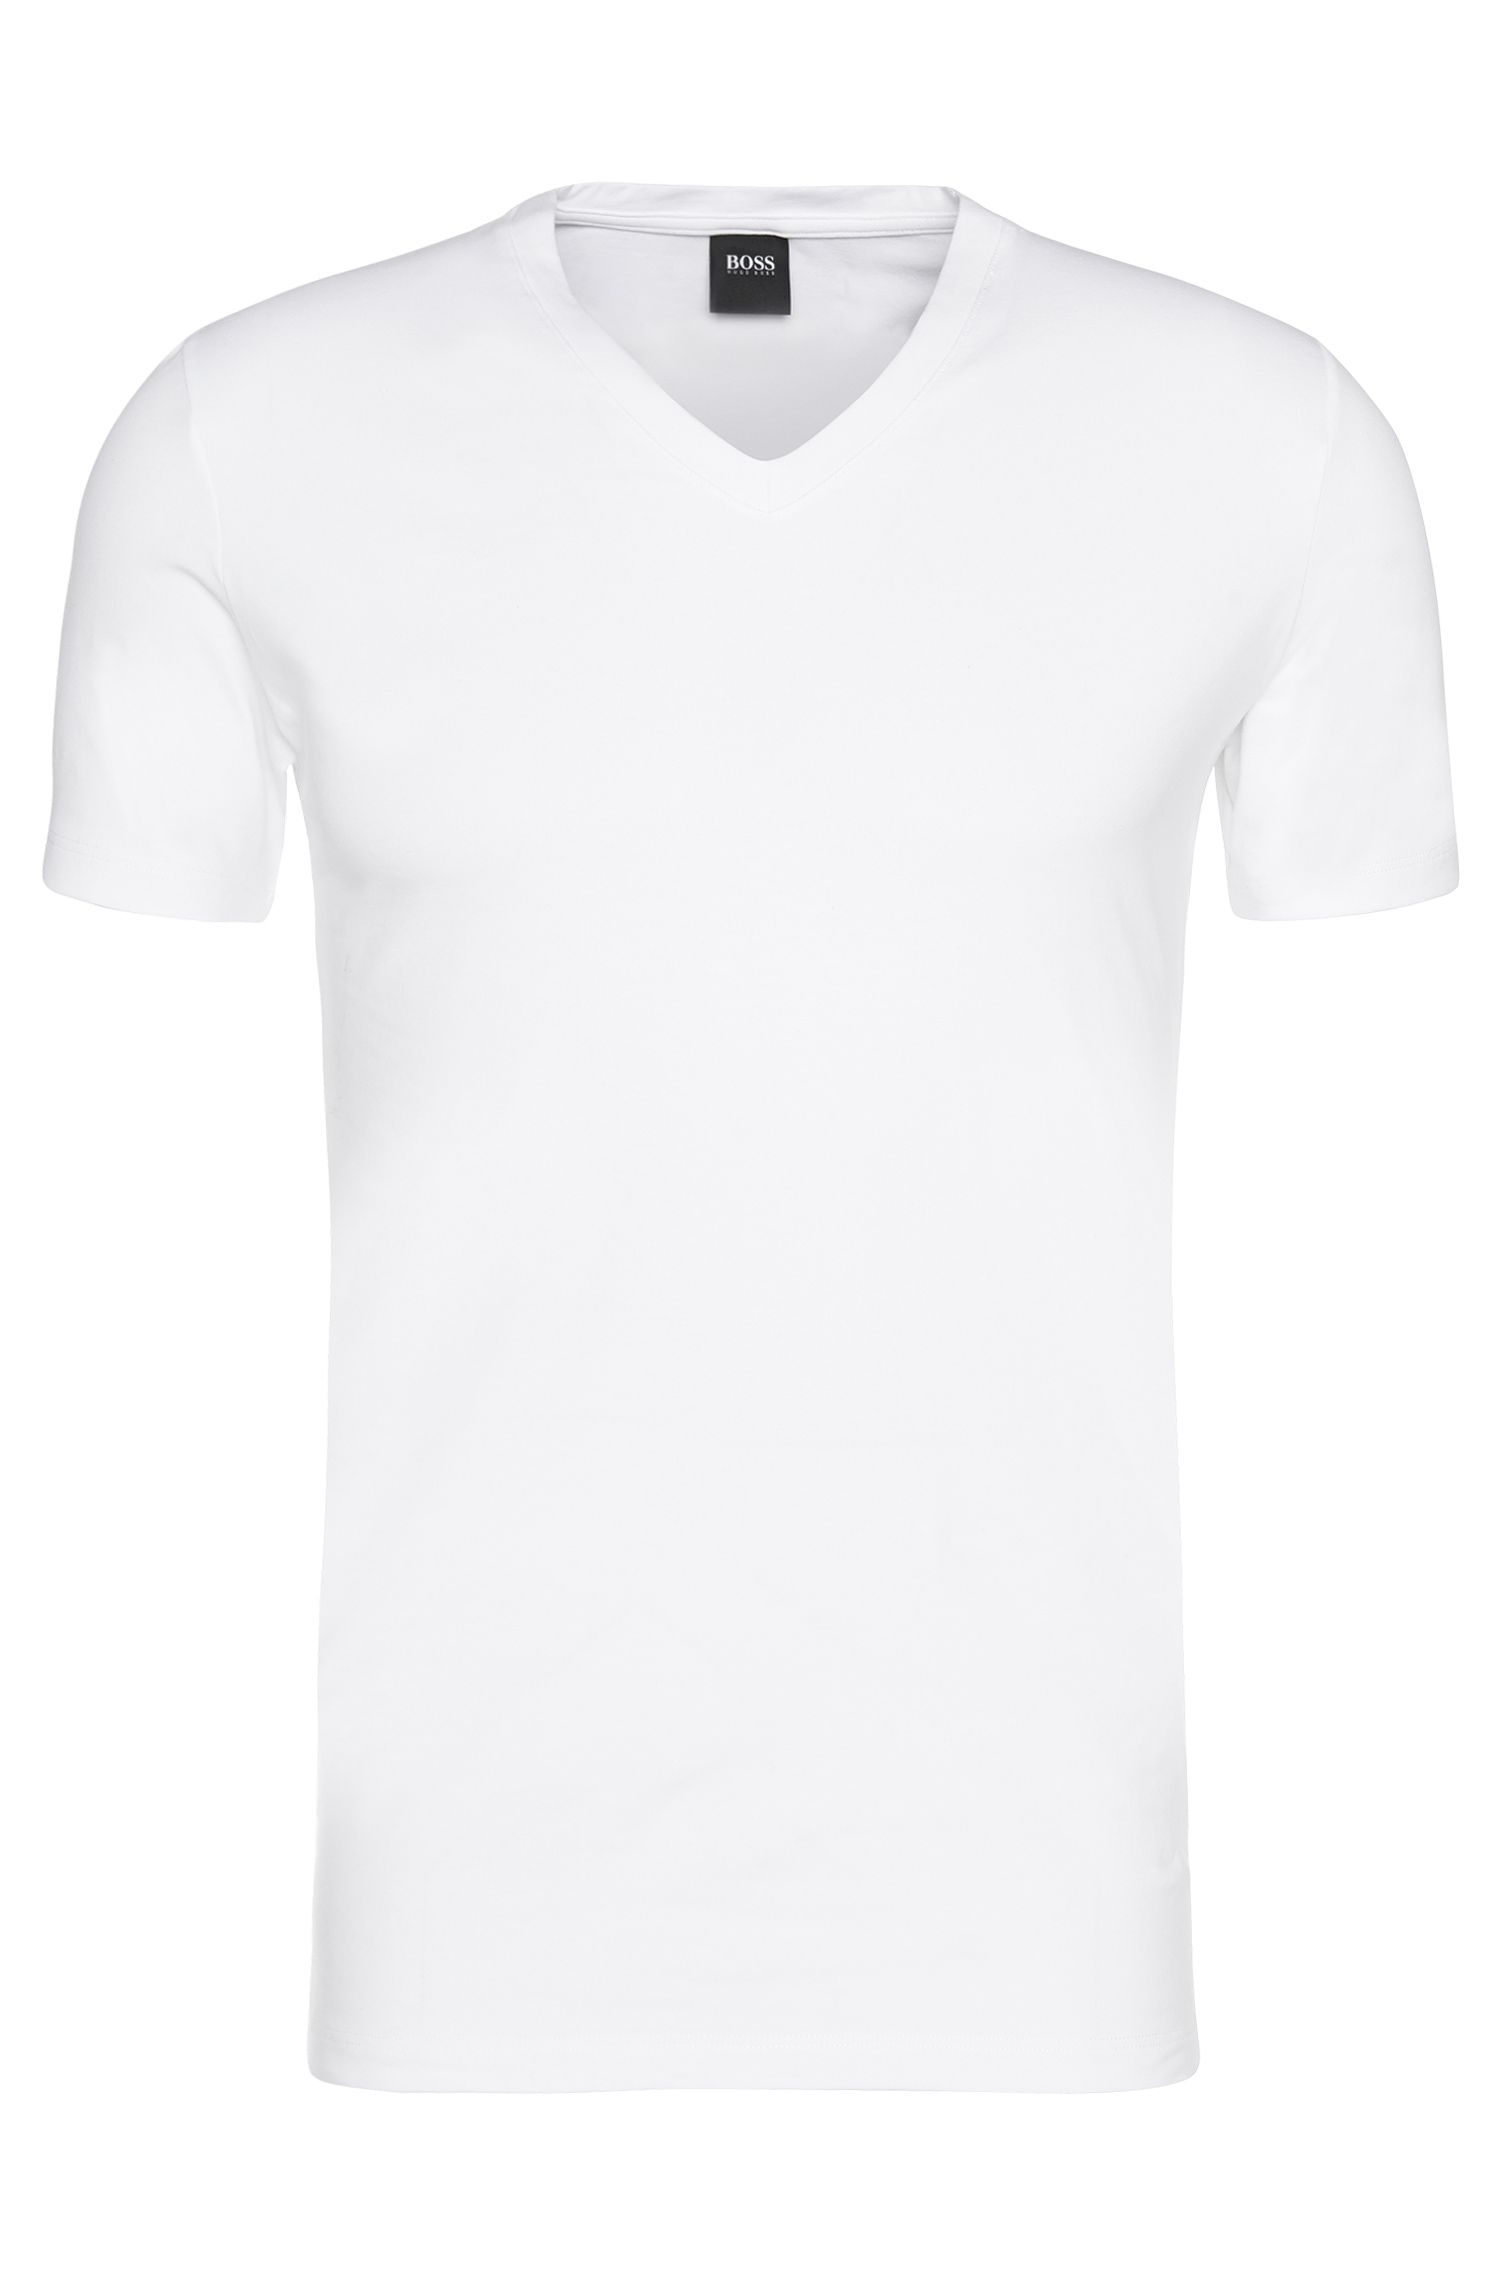 Plain-coloured t-shirt in stretch cotton: 'Shirt Motion'